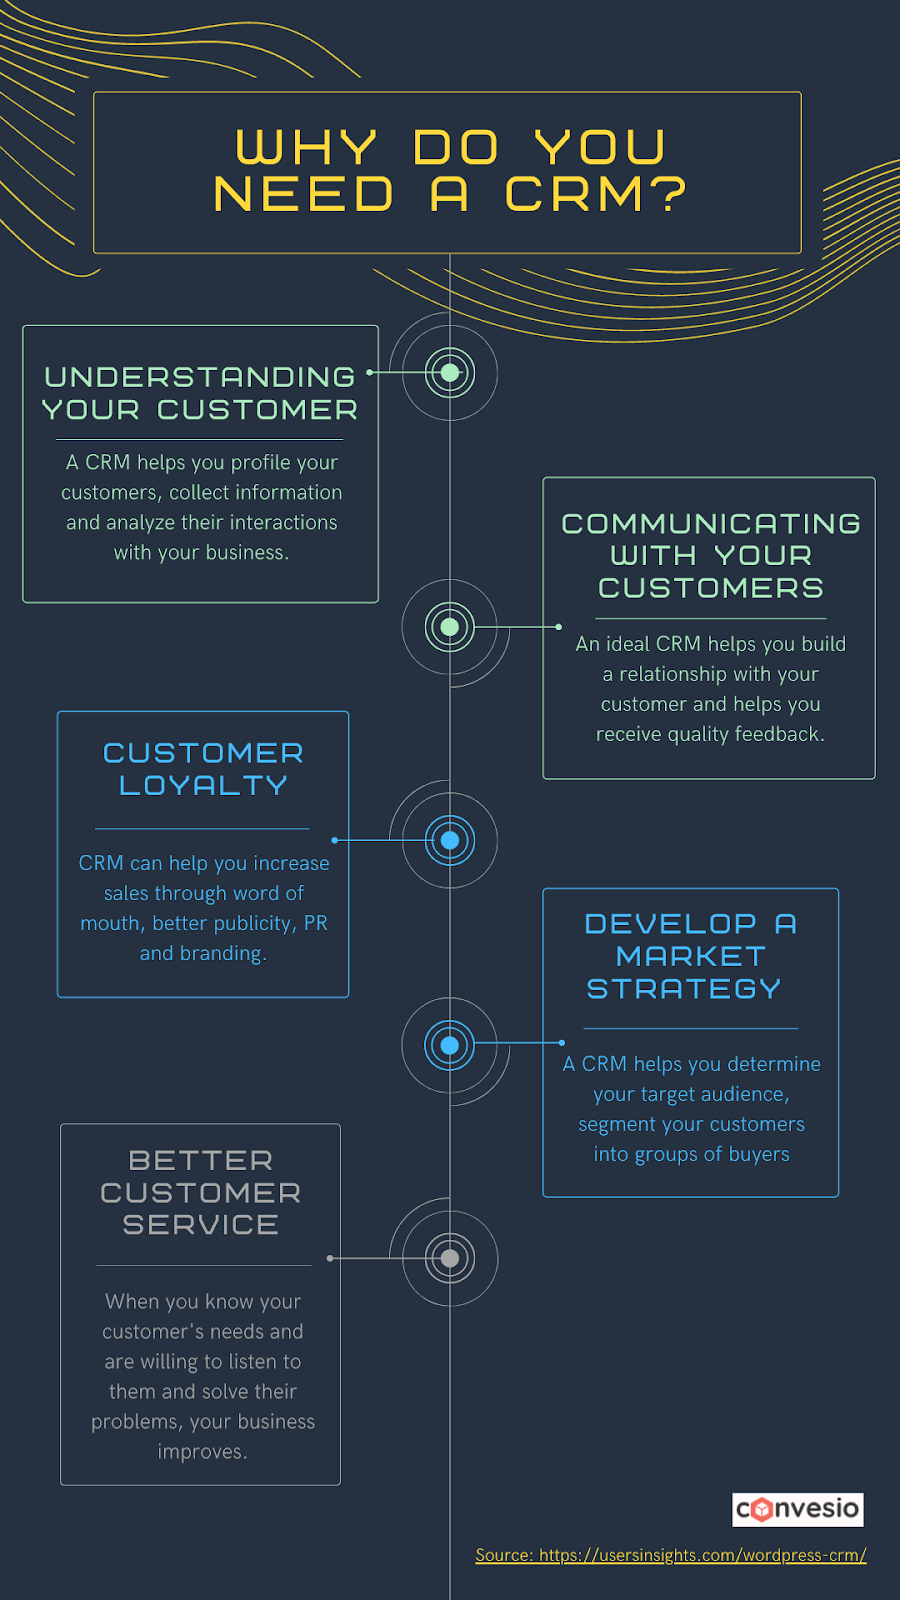 Infographic listing reasons why a business may need CRM